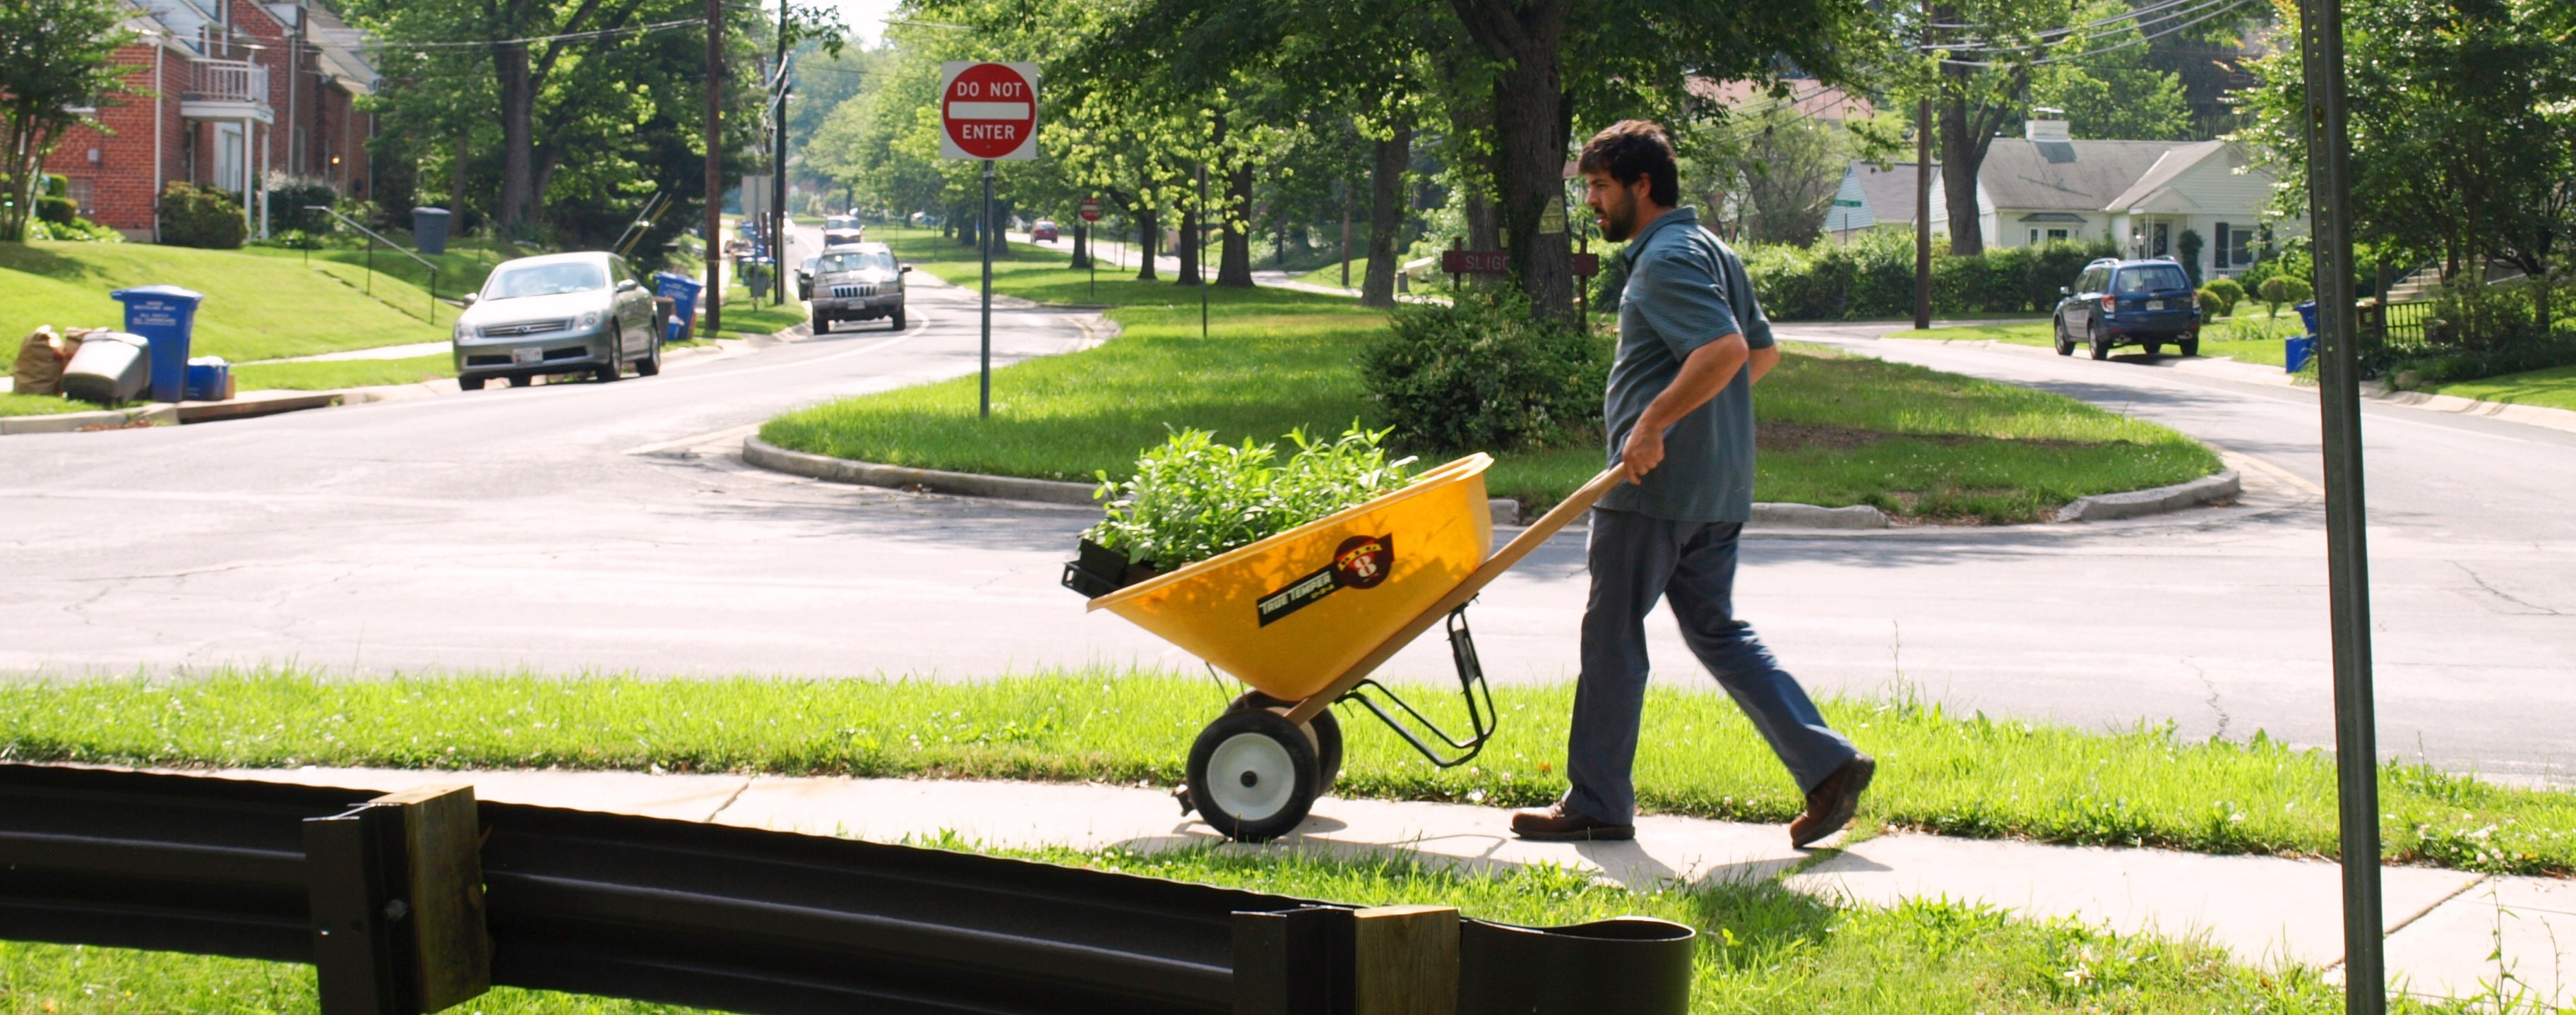 Image of a volunteer moving plants with a wheel barrow.